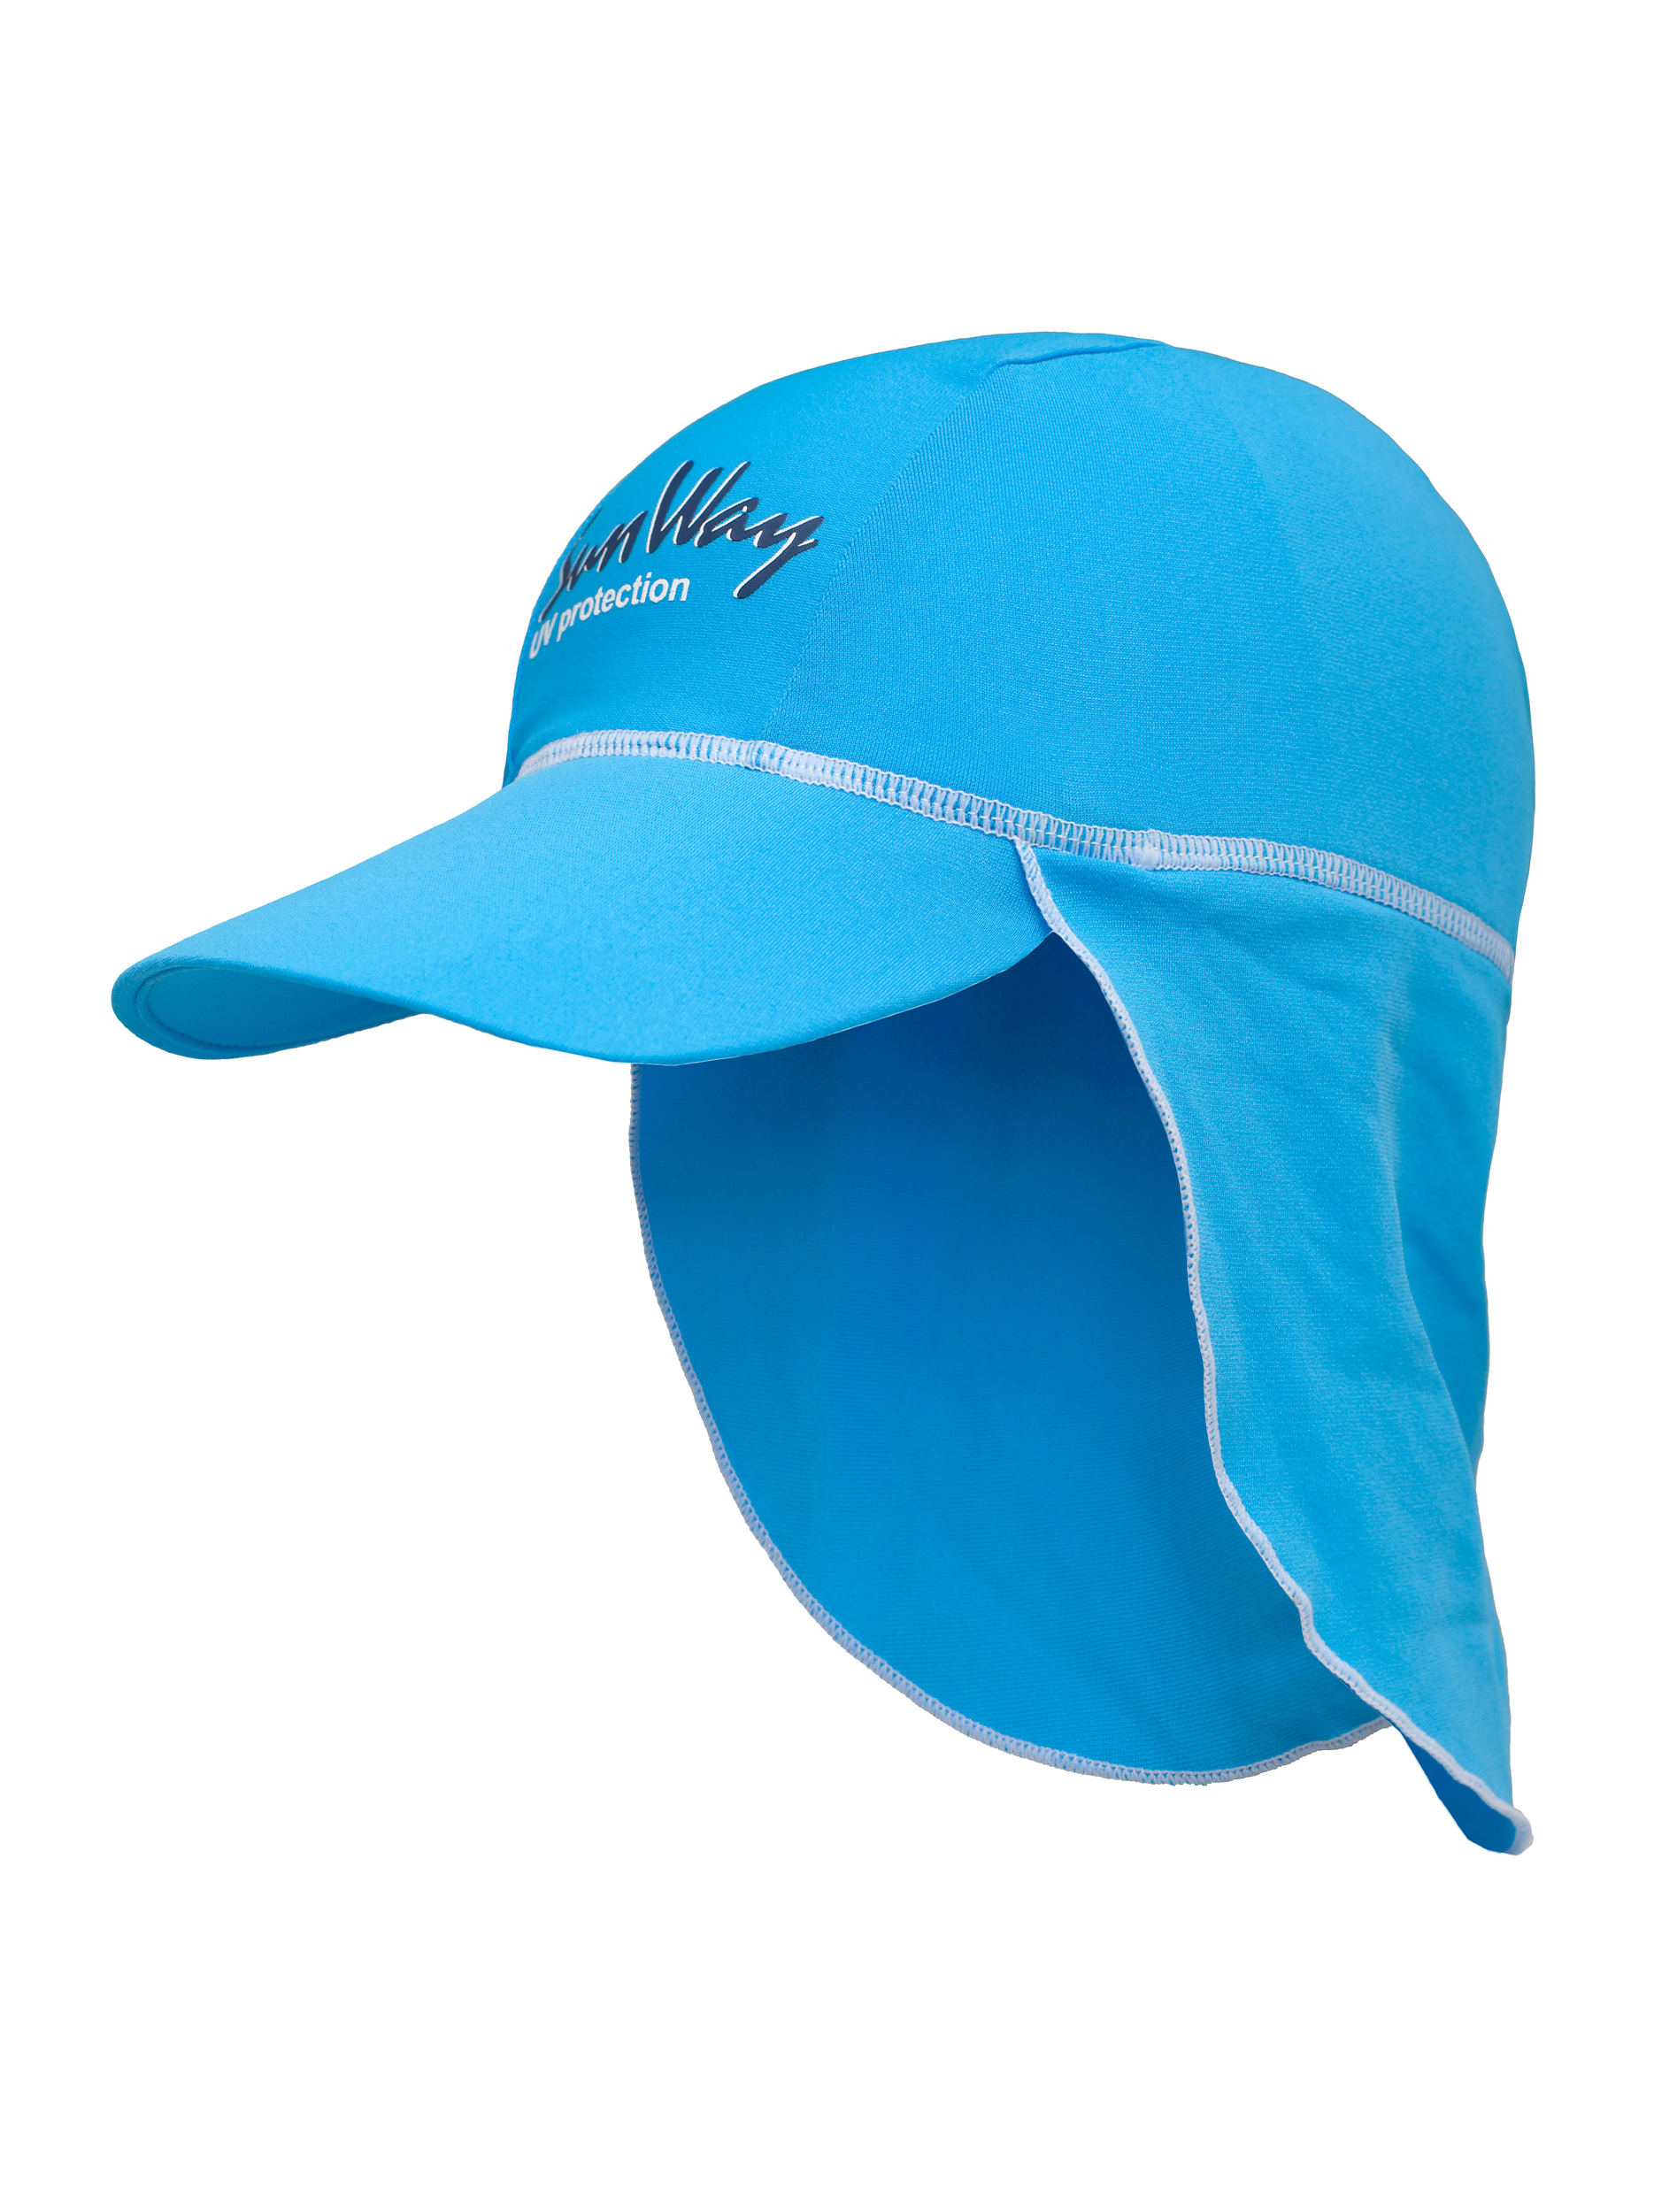 SunWay's UV Protective Hats: Blue Legionnaire Hat